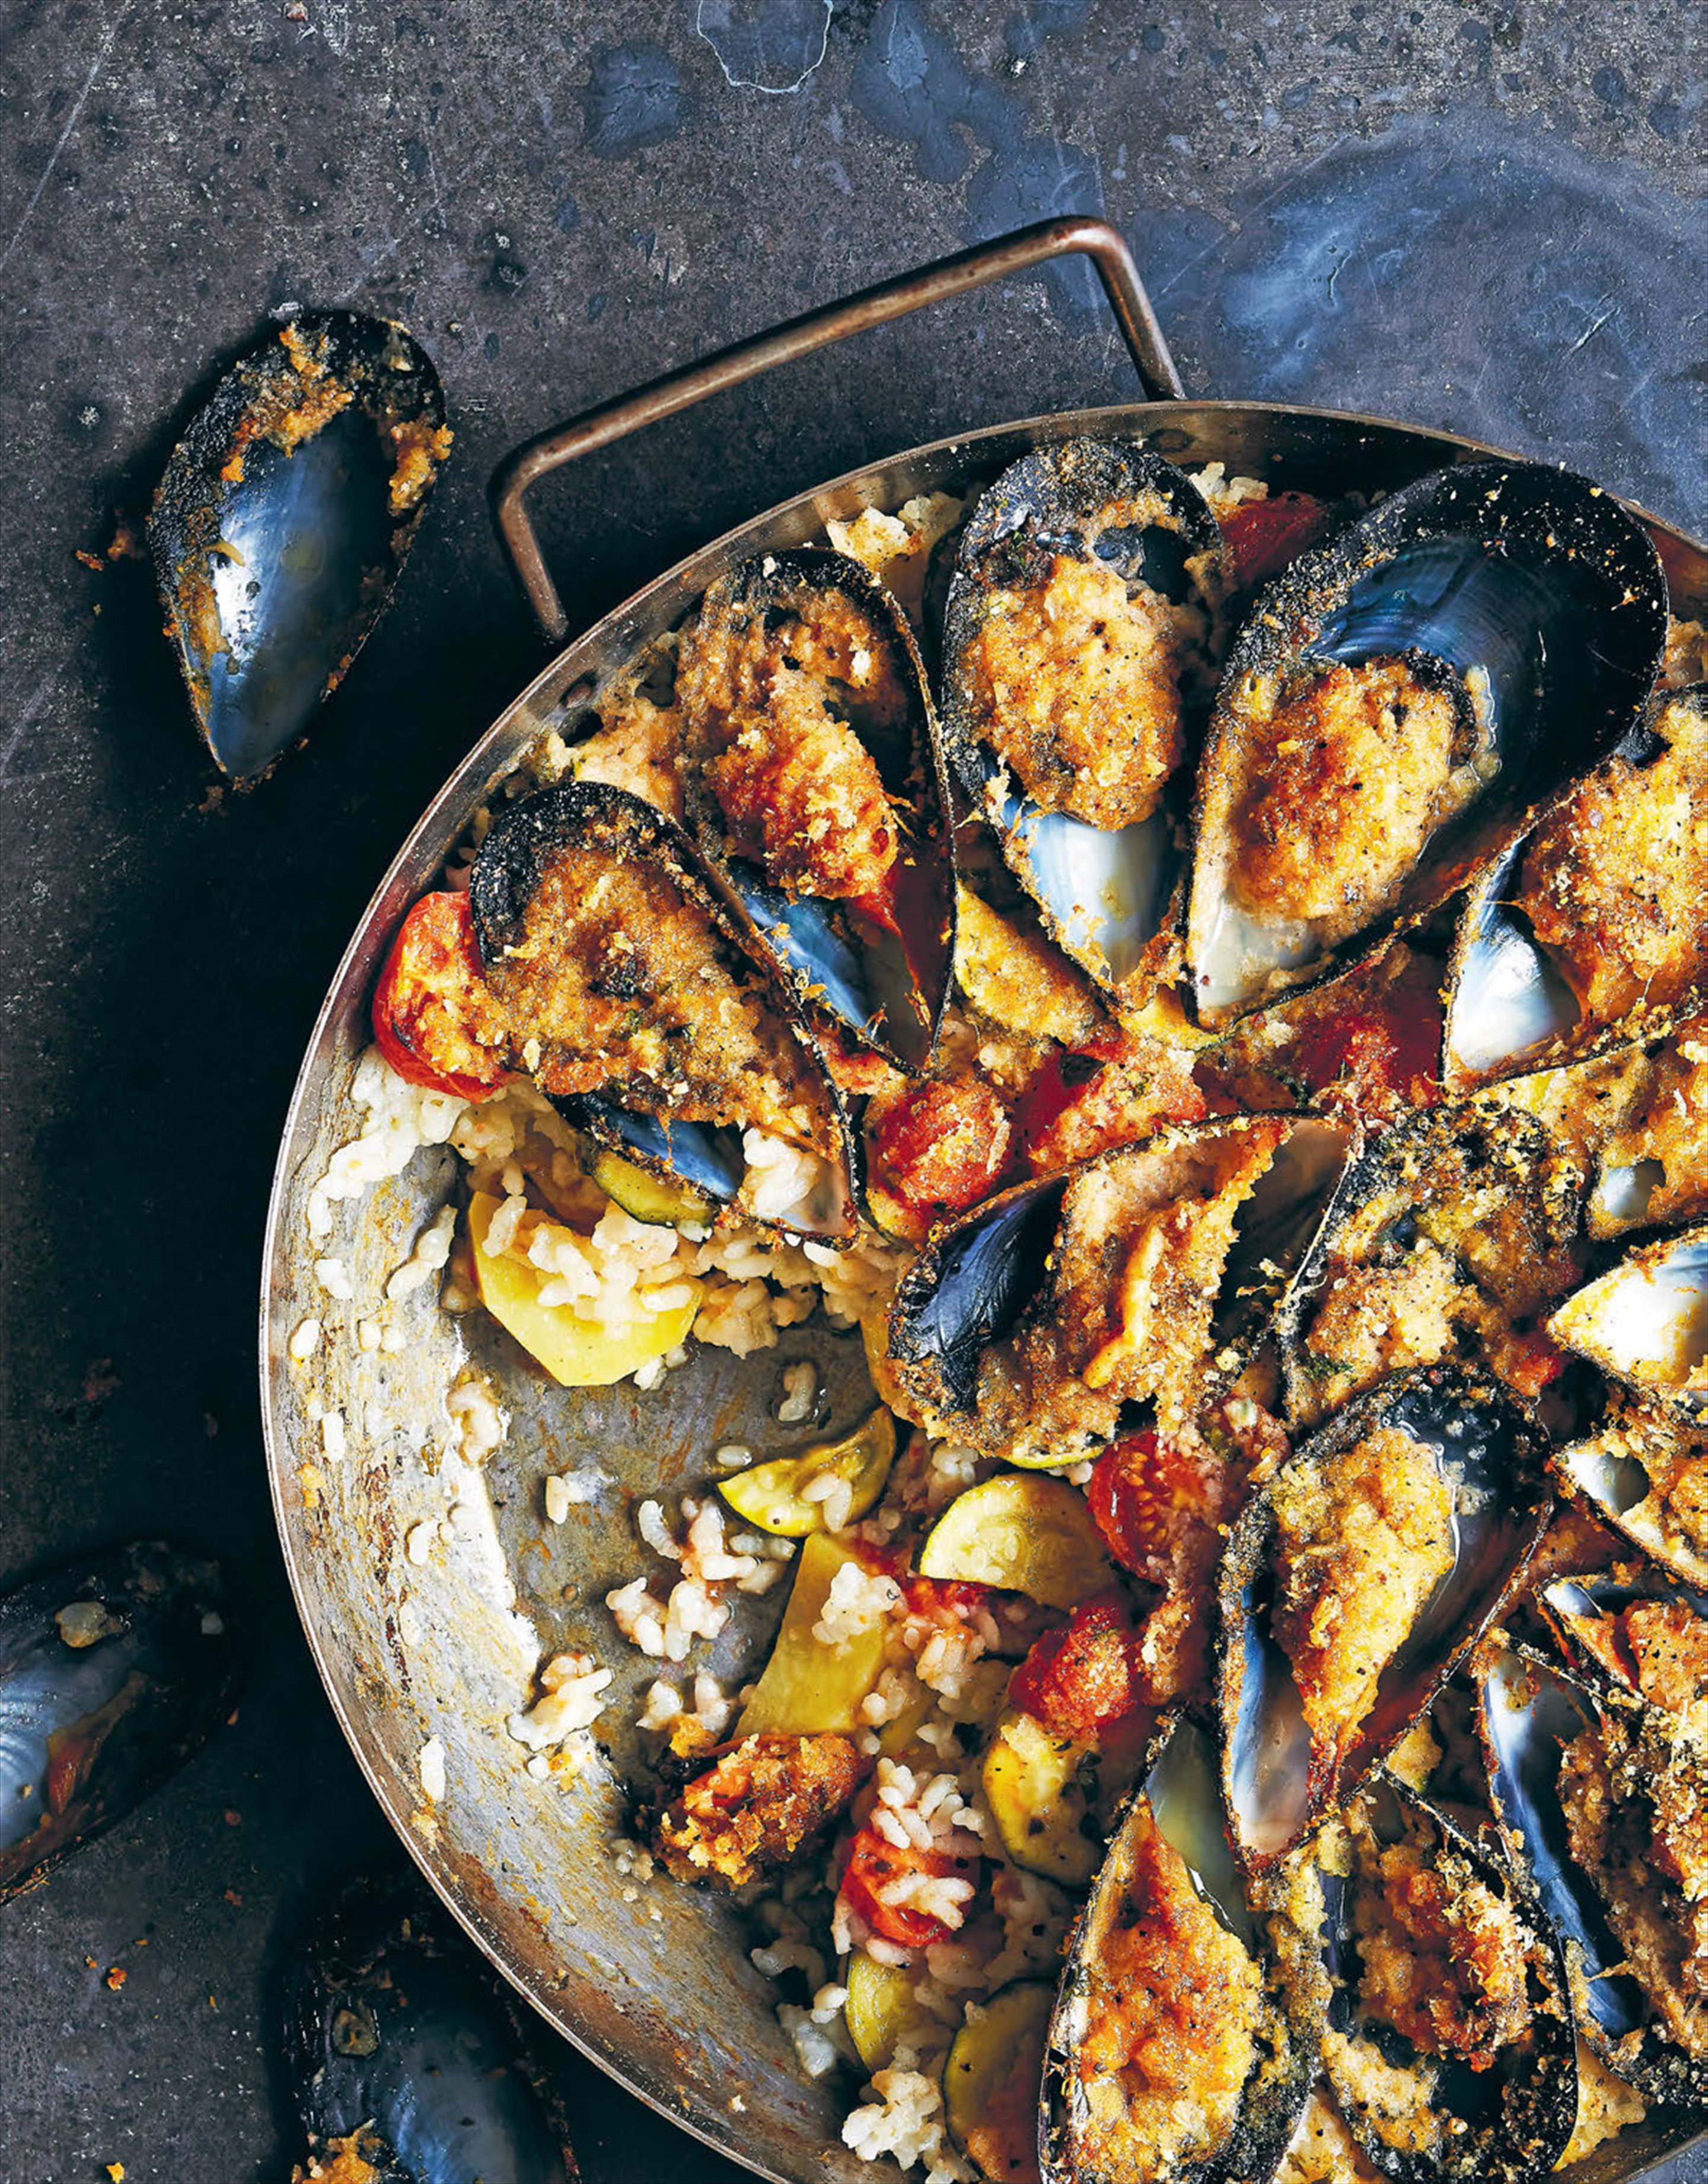 Rice, potato and mussel bake